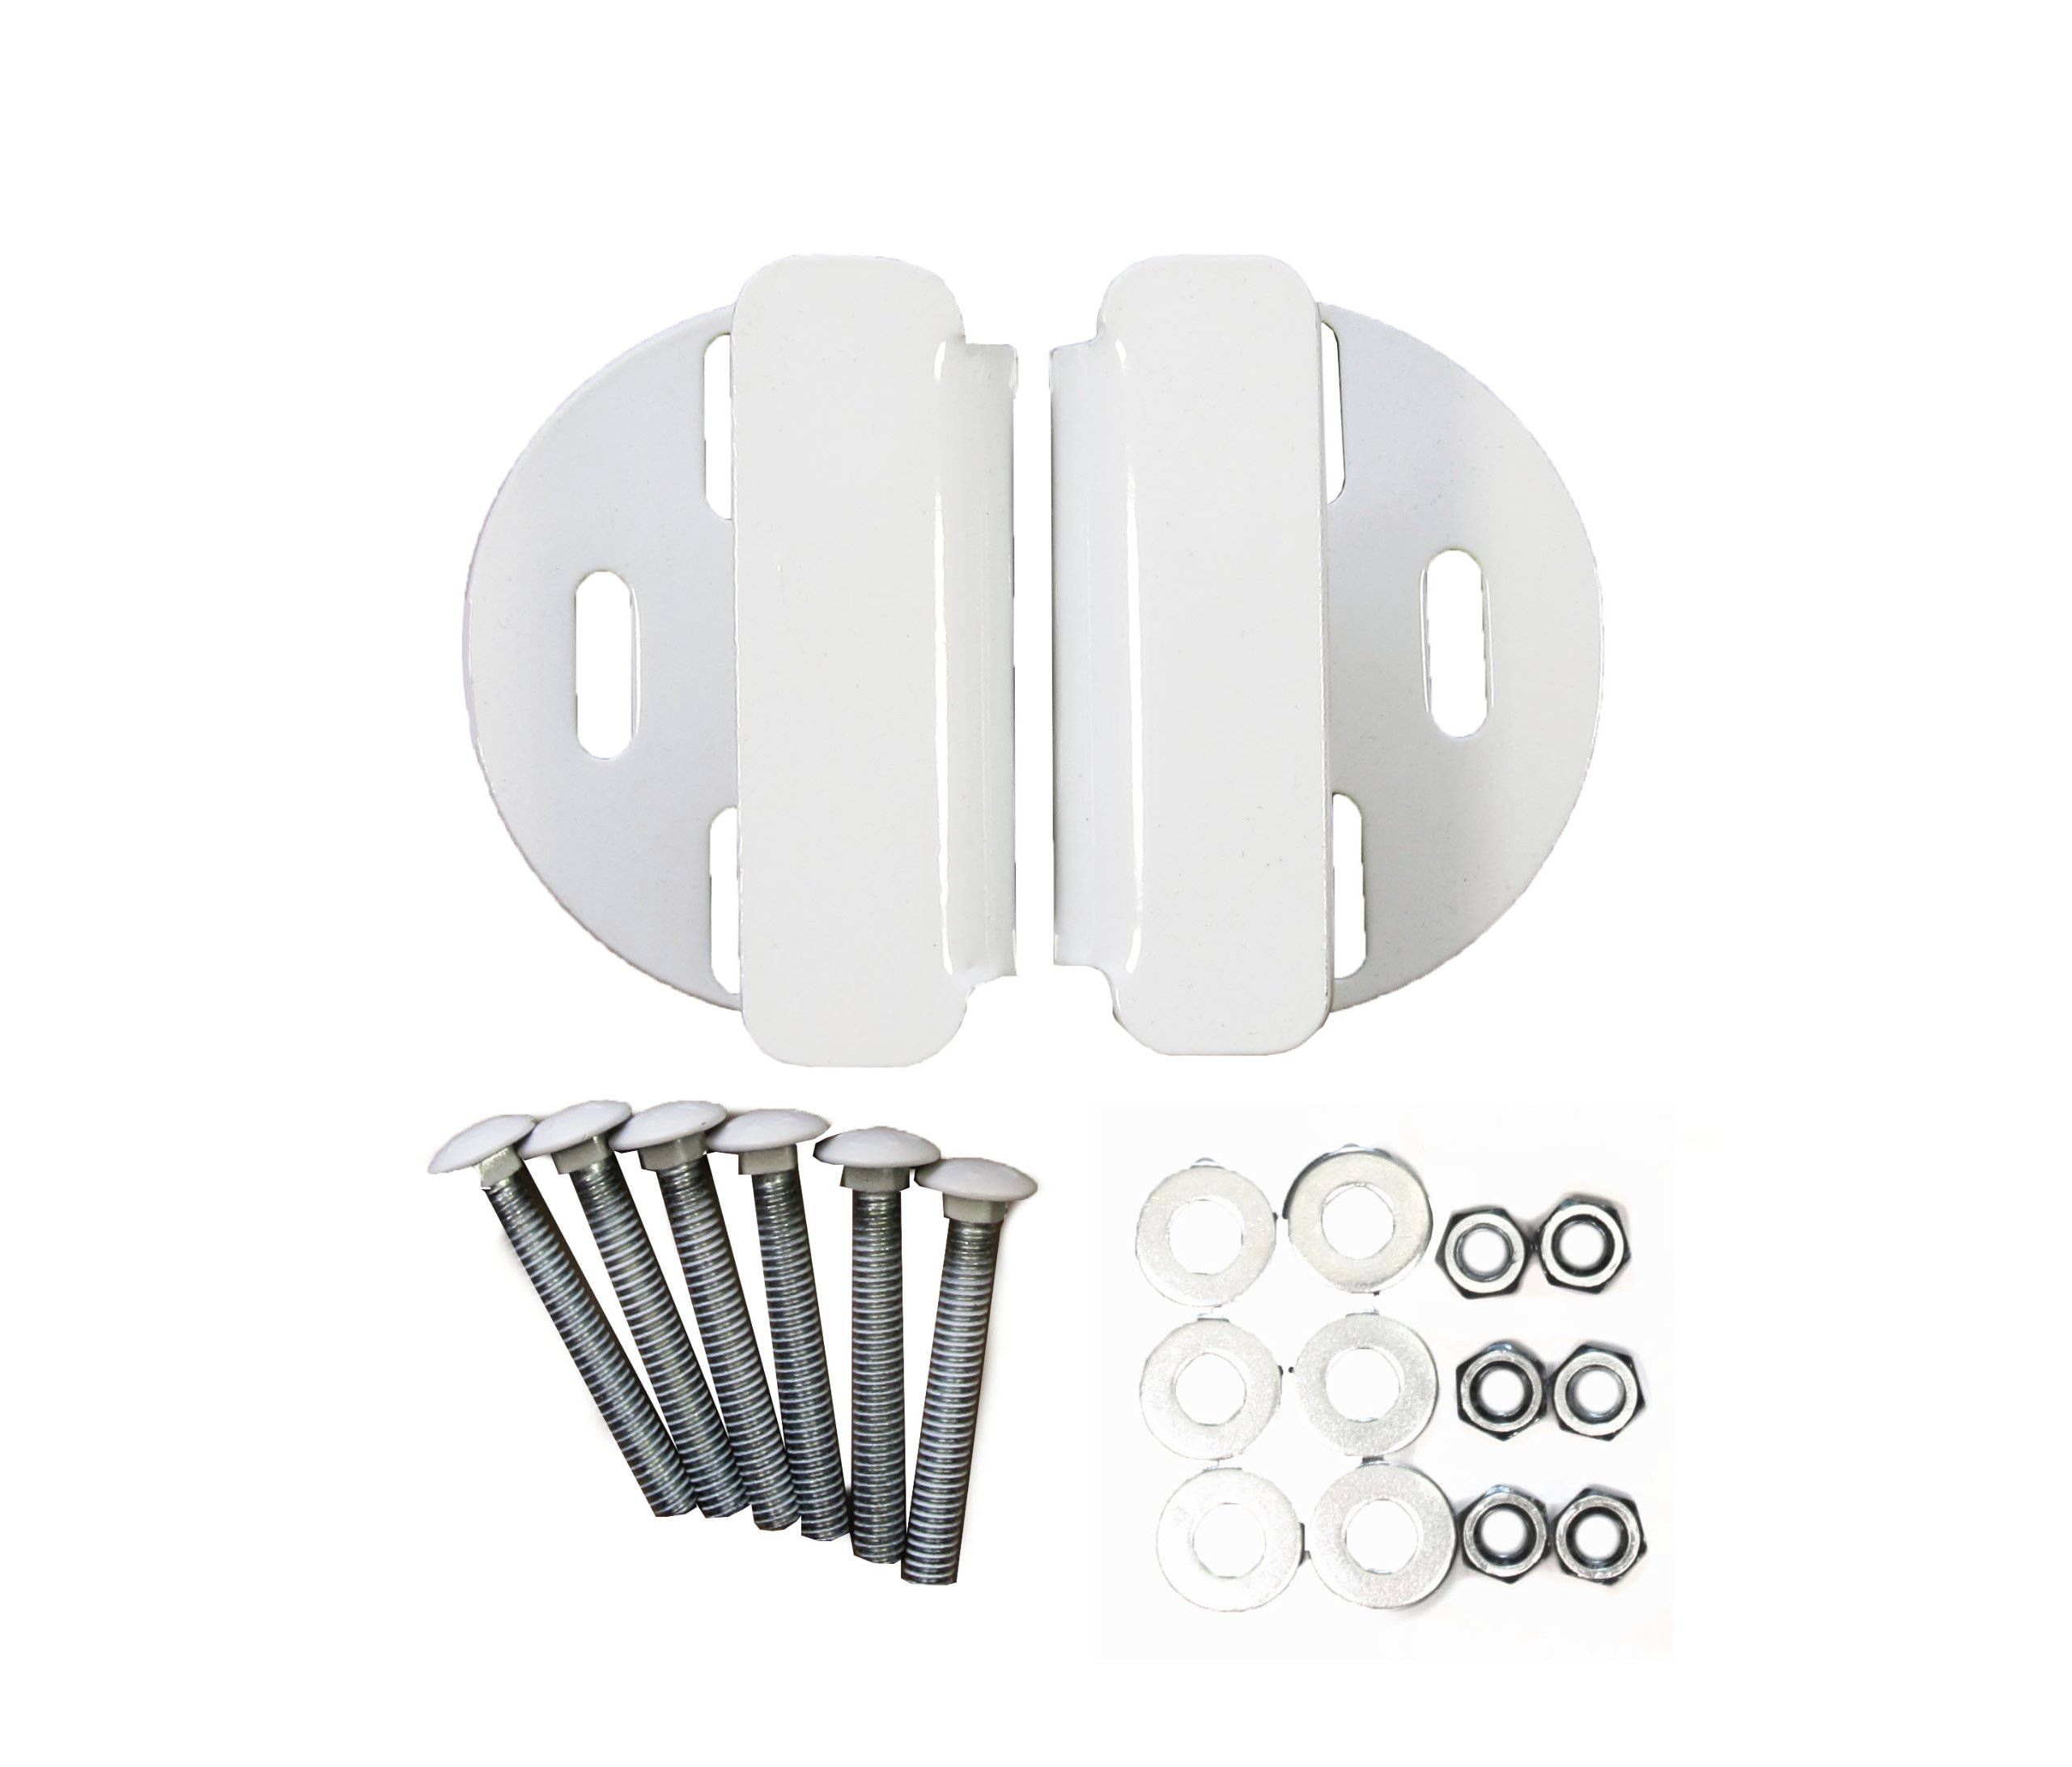 Padlock Protector Heavy Hasp and Handle (White)